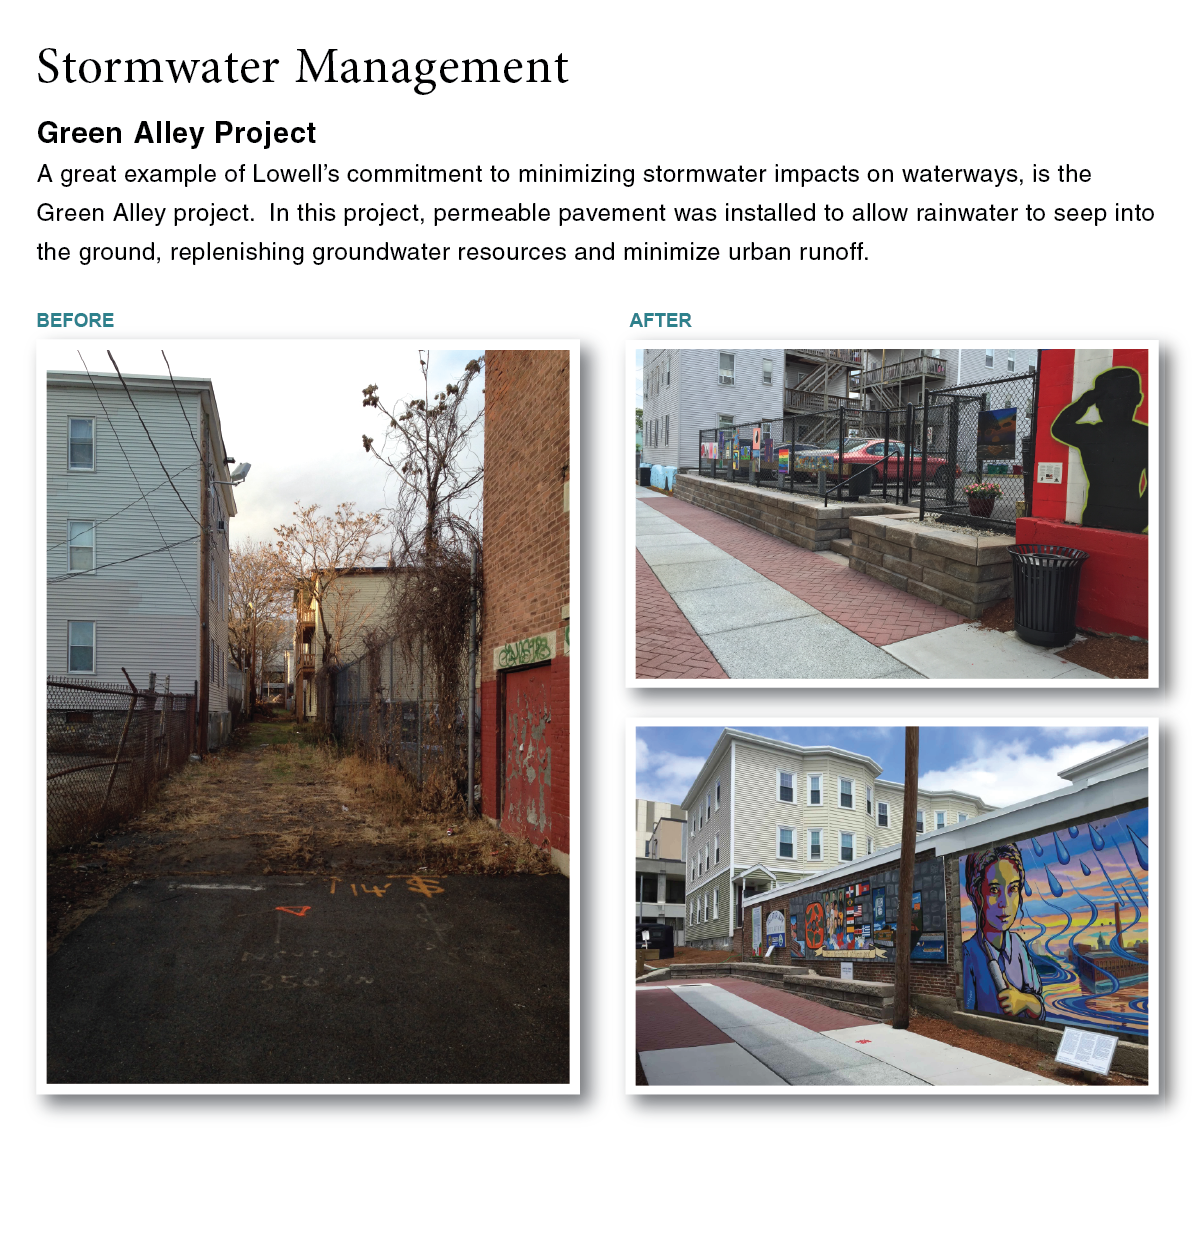 stormwater management-green alley